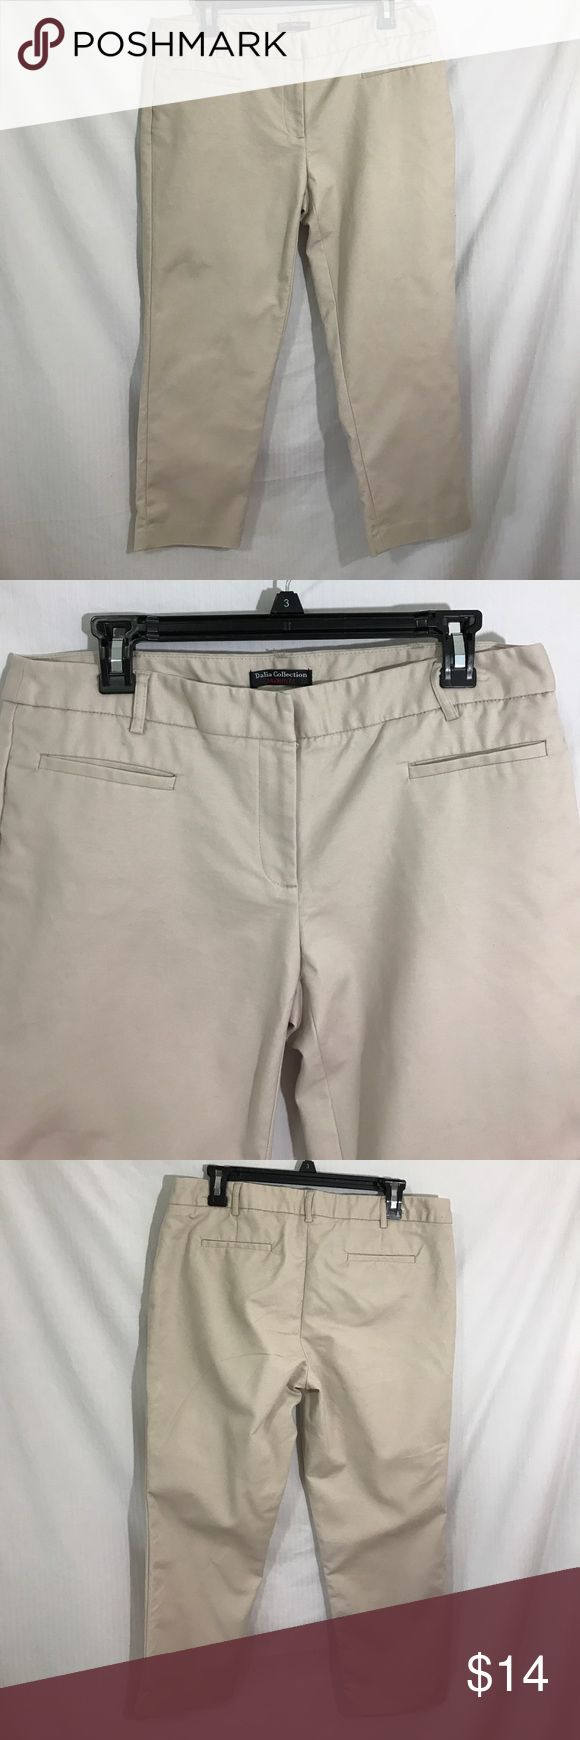 Dalia collections modern fit khaki capris 12 Like new Dalia collections modern fit khakis capris size 12 is a material that has a little stretch to it  inseam 23 EUC Dalia Pants Capris